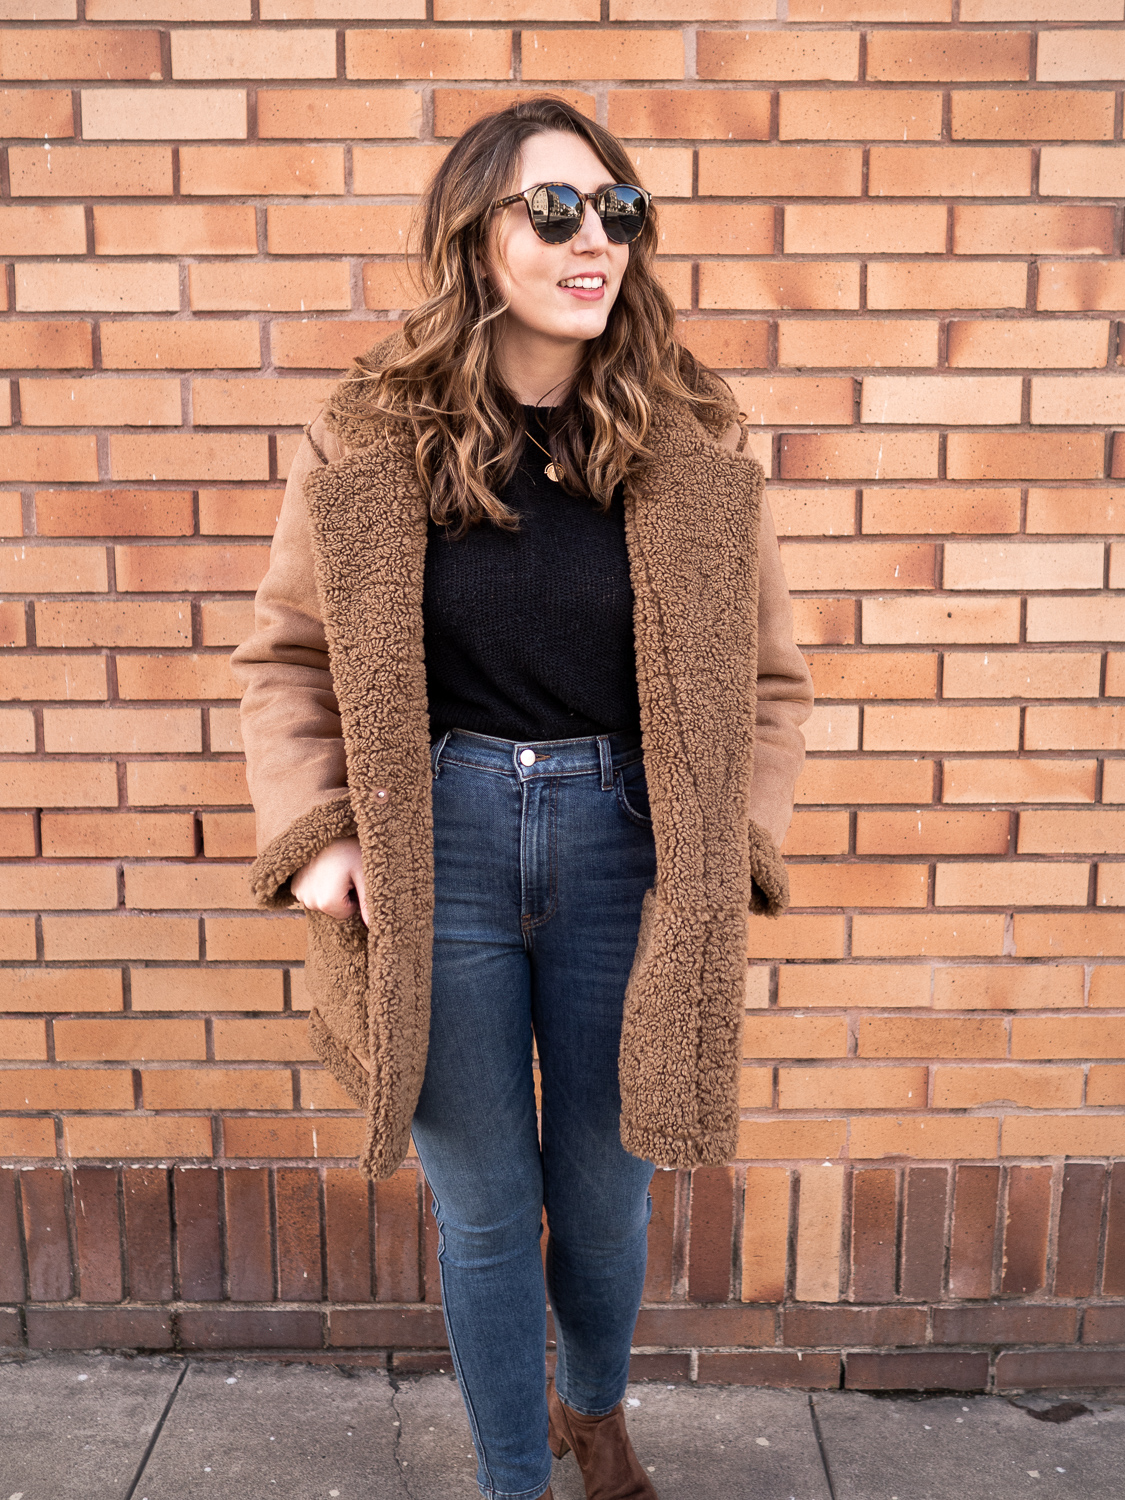 Blogger Erin wears the Reformation Barlow Coat in brown against a brown brick wall in San Francisco